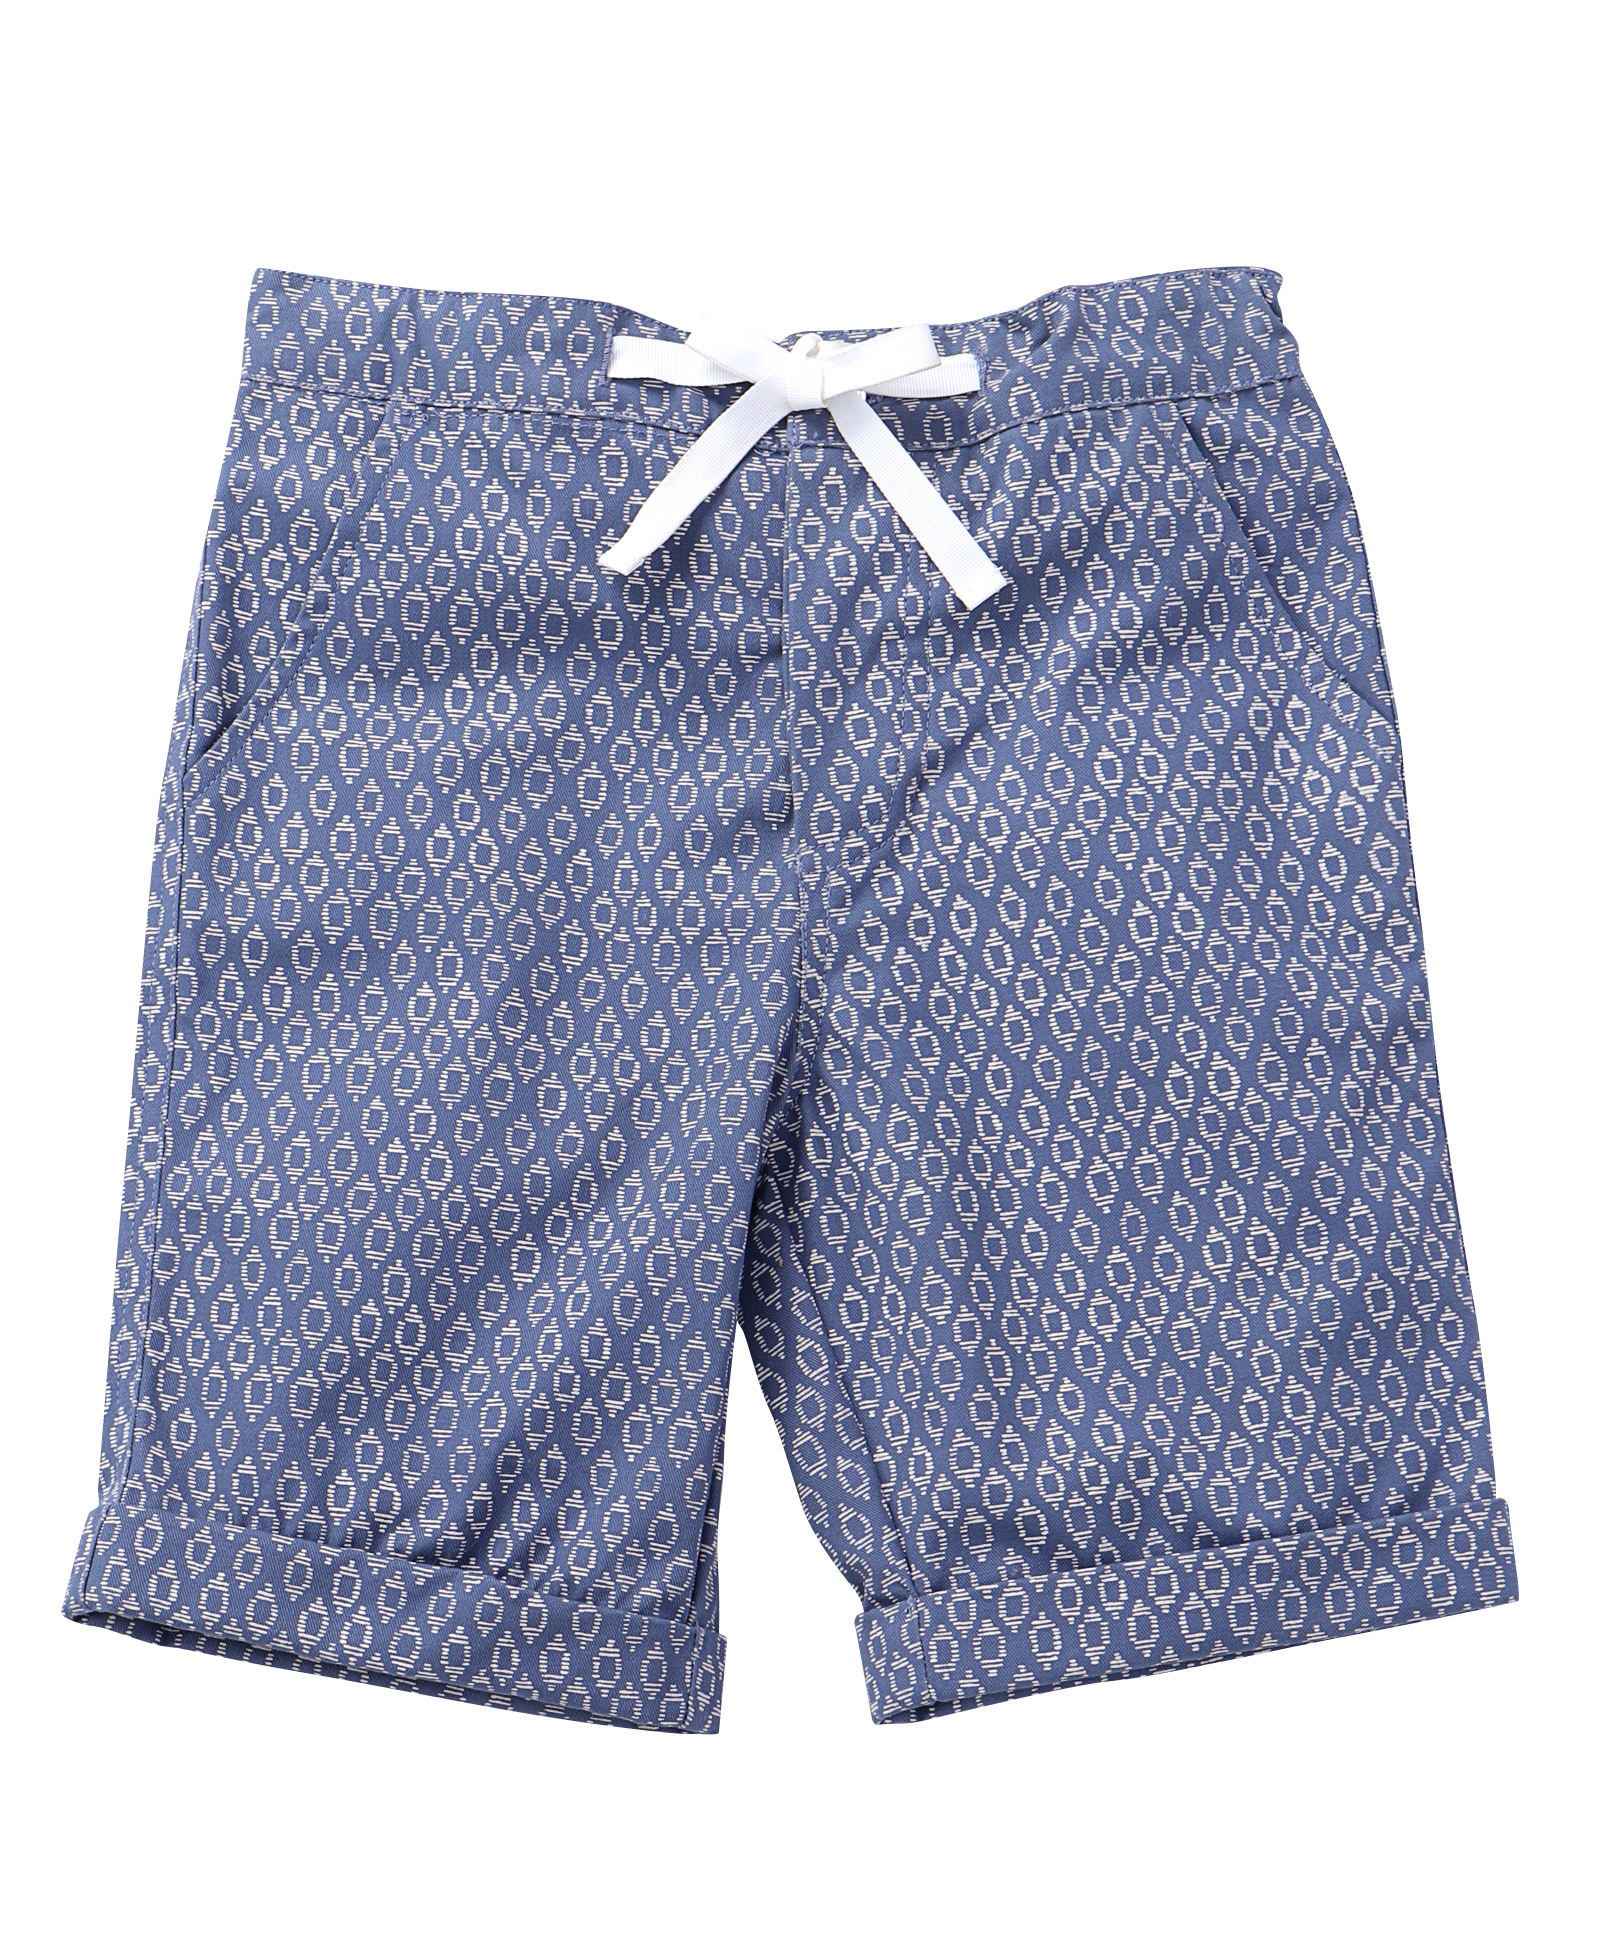 Popsicles Clothing | Popsicles Aegean Shorts Regular Fit For Boys